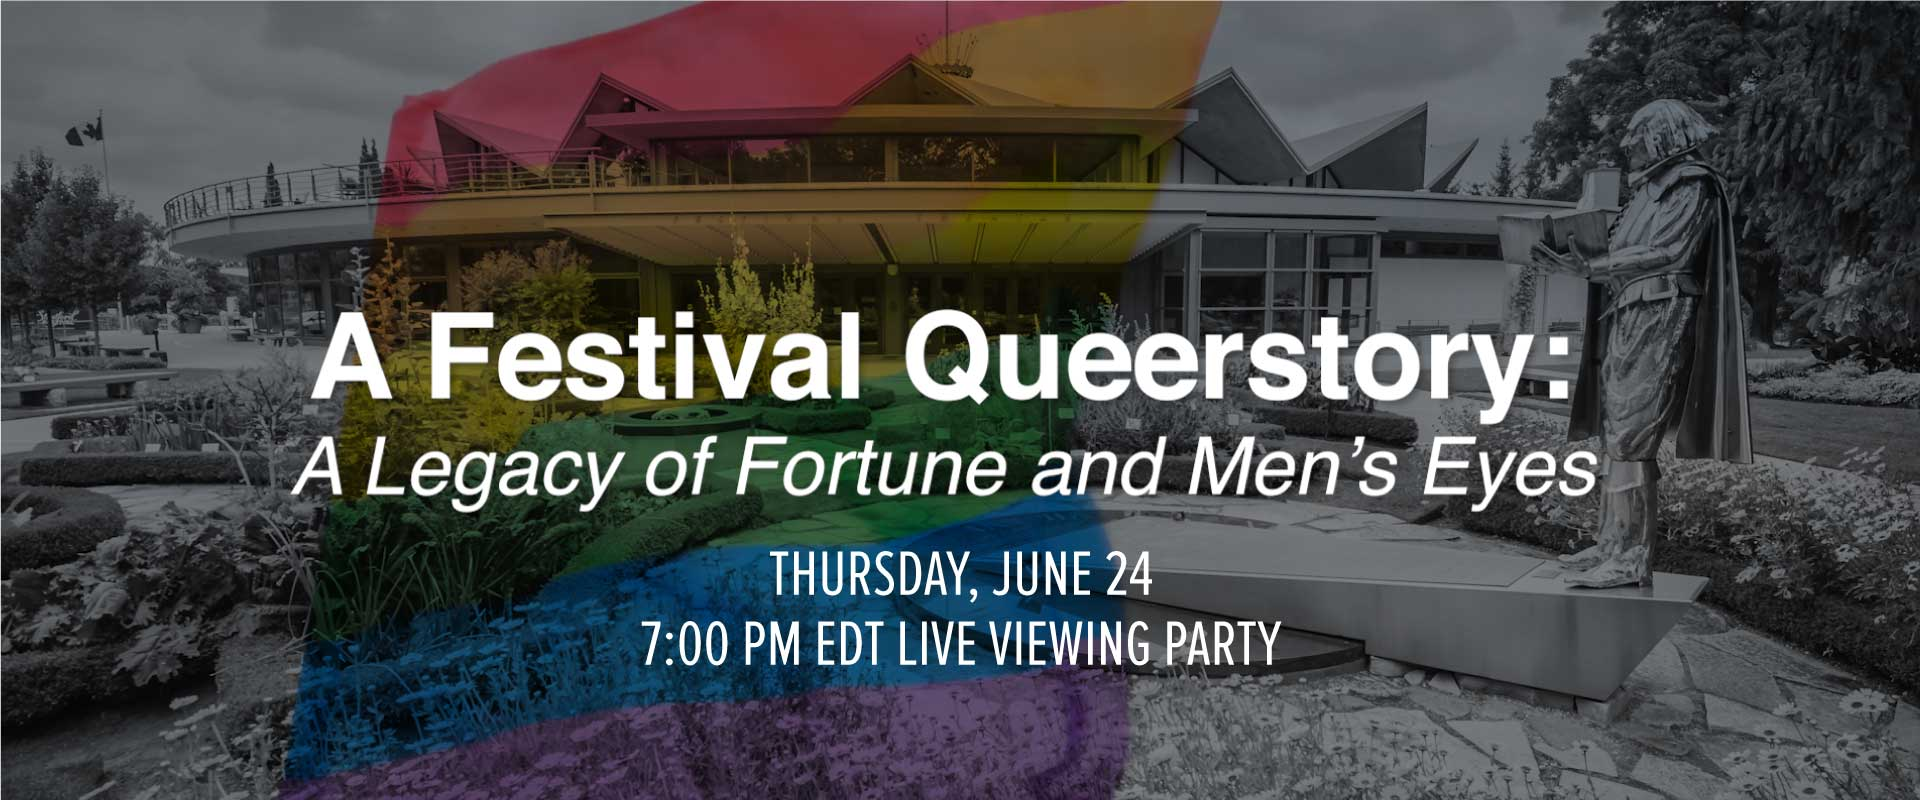 Live viewing party for A Festival Queerstory: A Legacy of Fortune and Men's Eyes, Thursday June 24, 7:00pm EDT